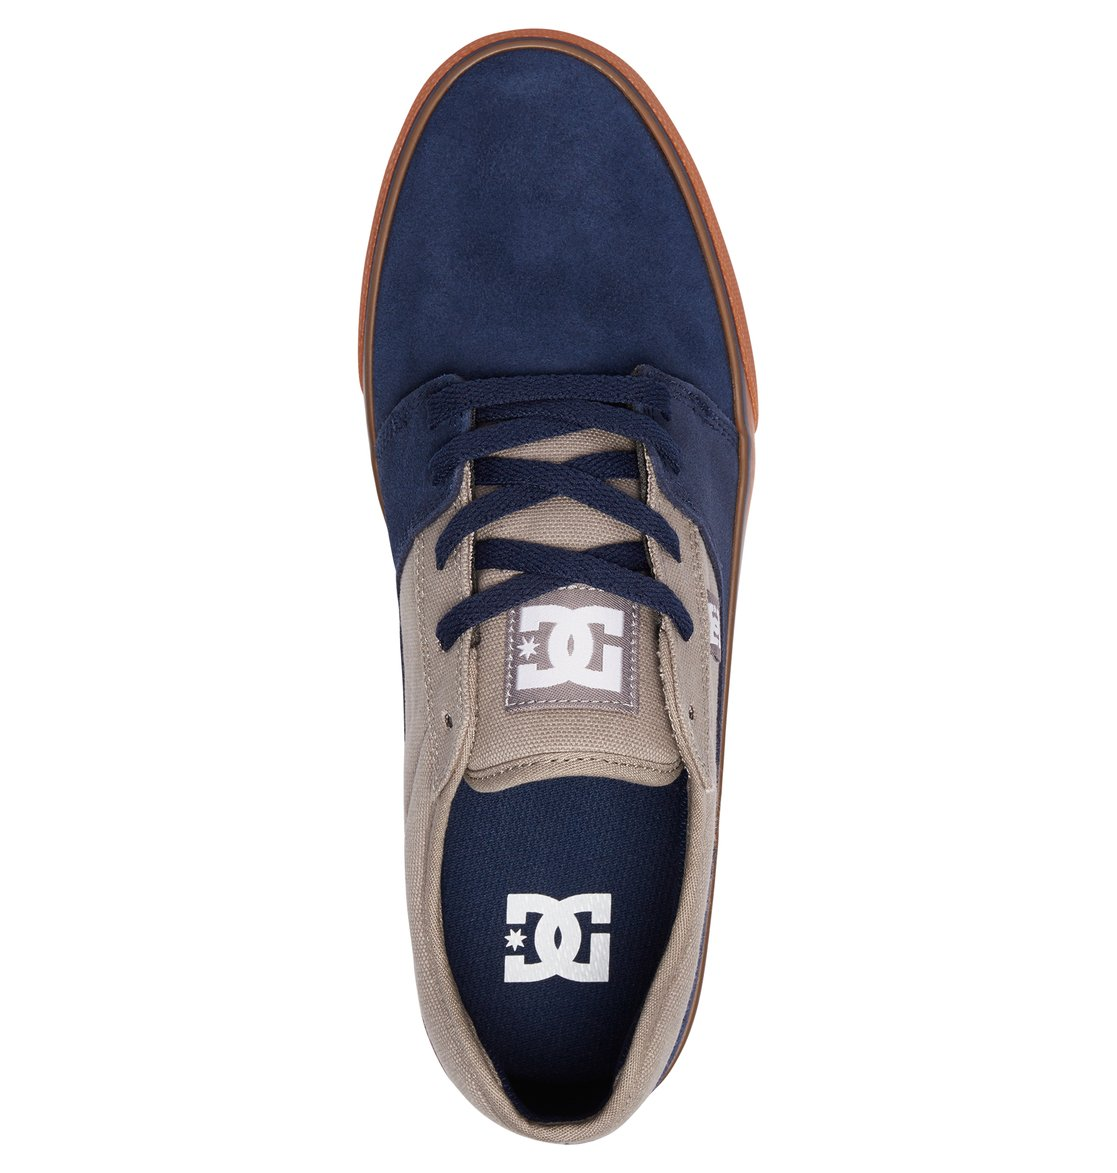 DC-Shoes-Tonik-Baskets-pour-Homme-302905 miniature 5